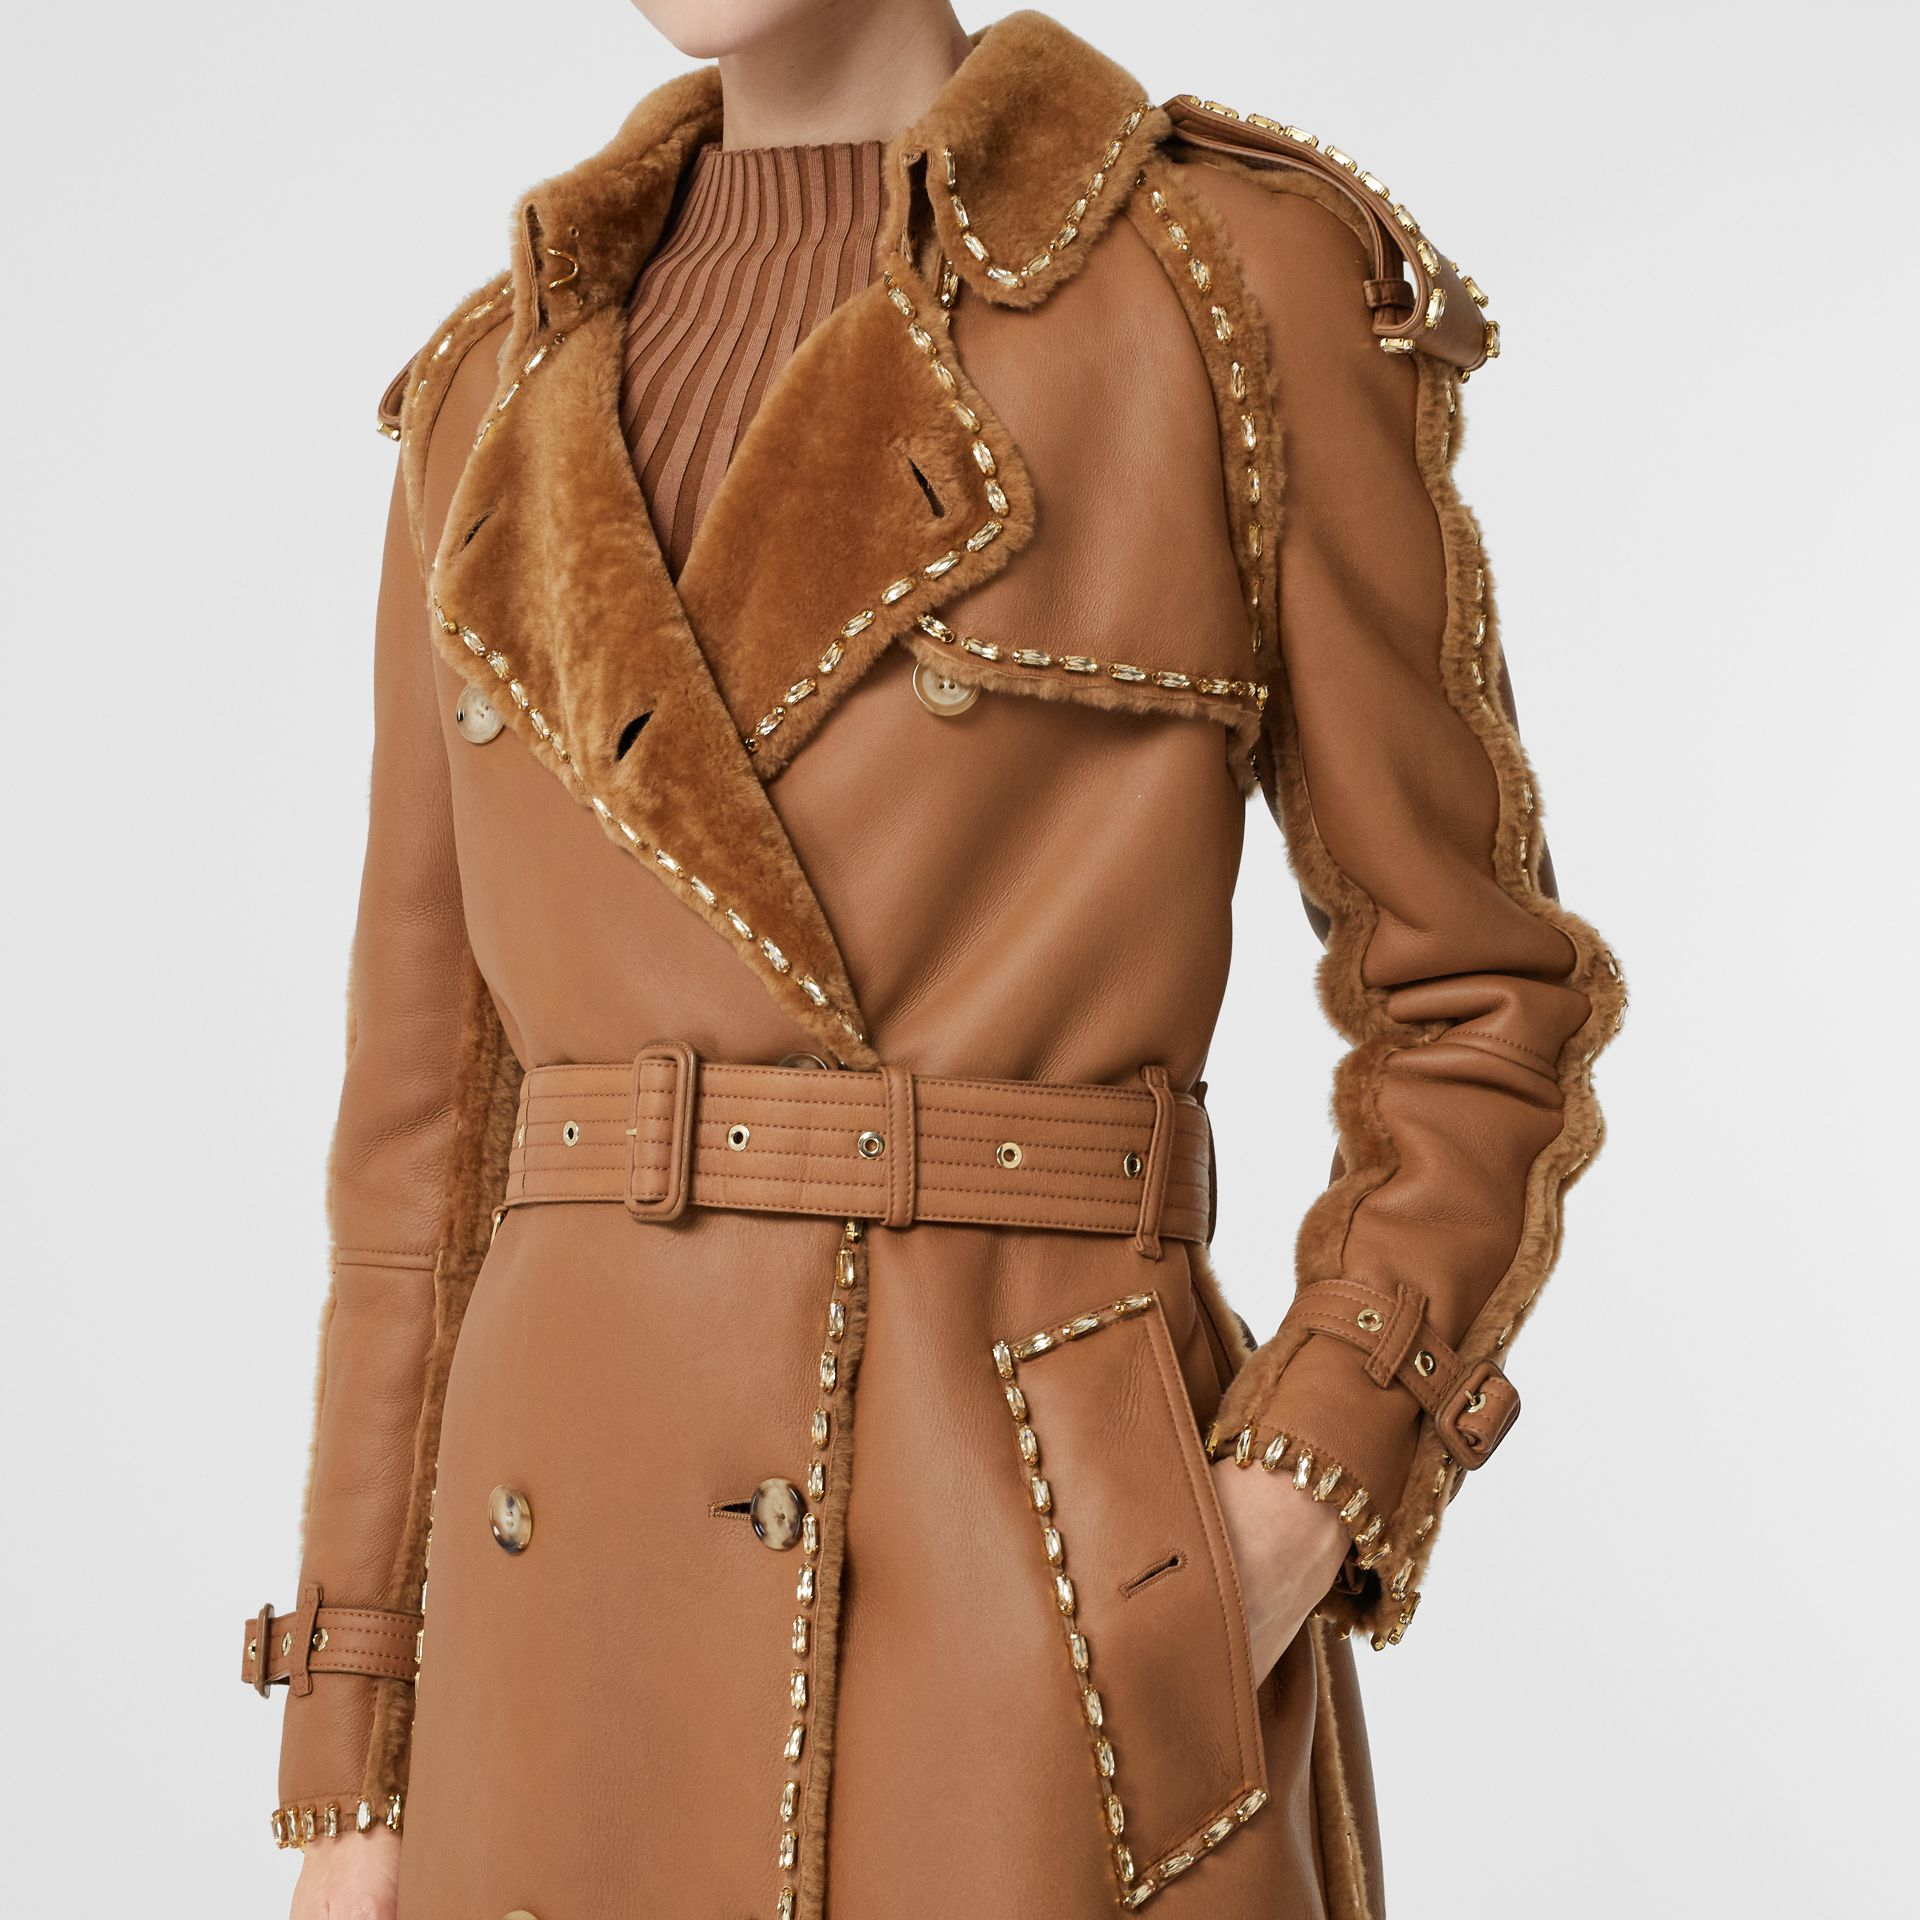 Embellished Shearling Trench Coat in Warm Camel - Women | Burberry - gallery image 4